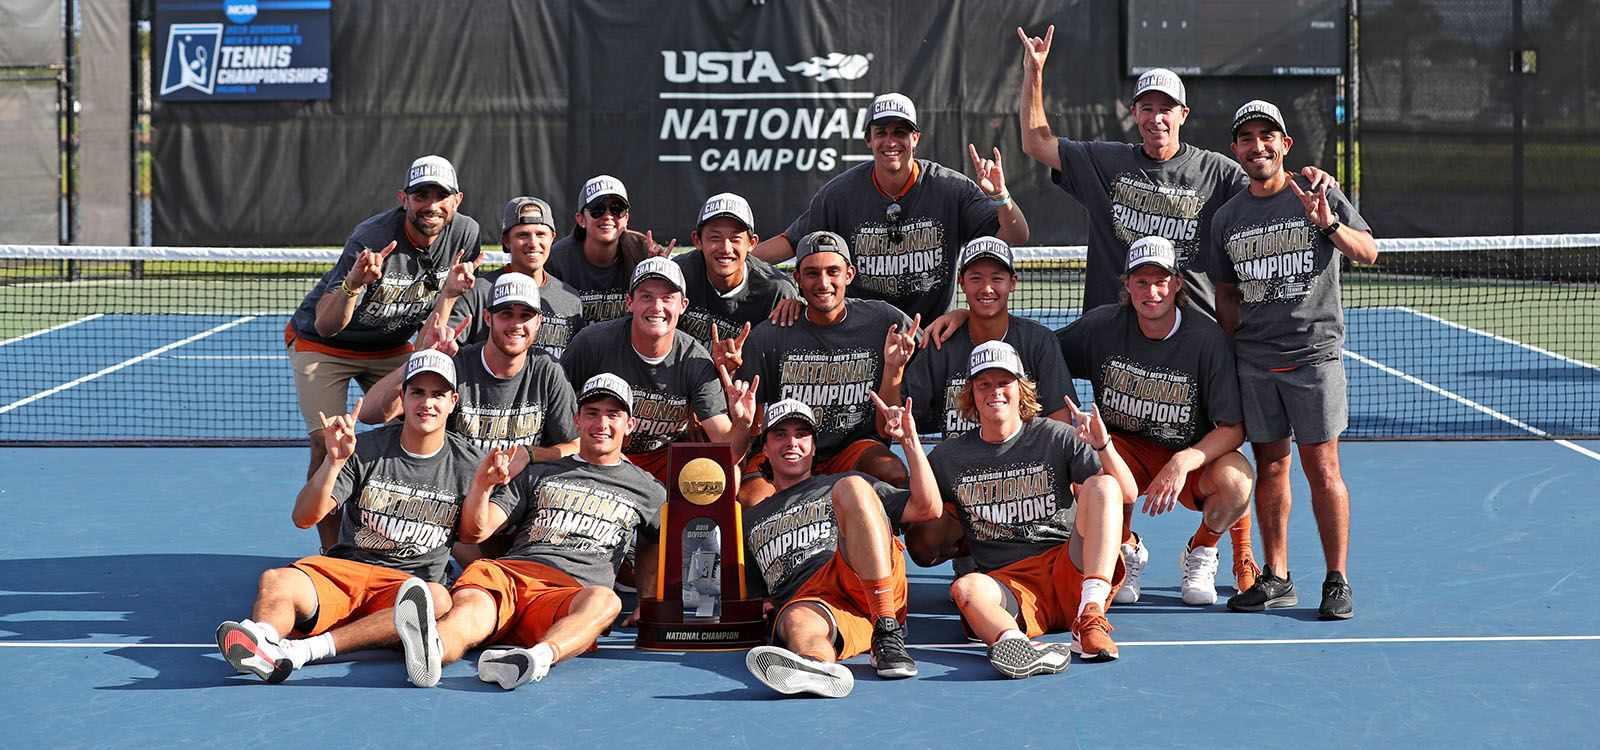 ncaa mens tennis team - 1024×672